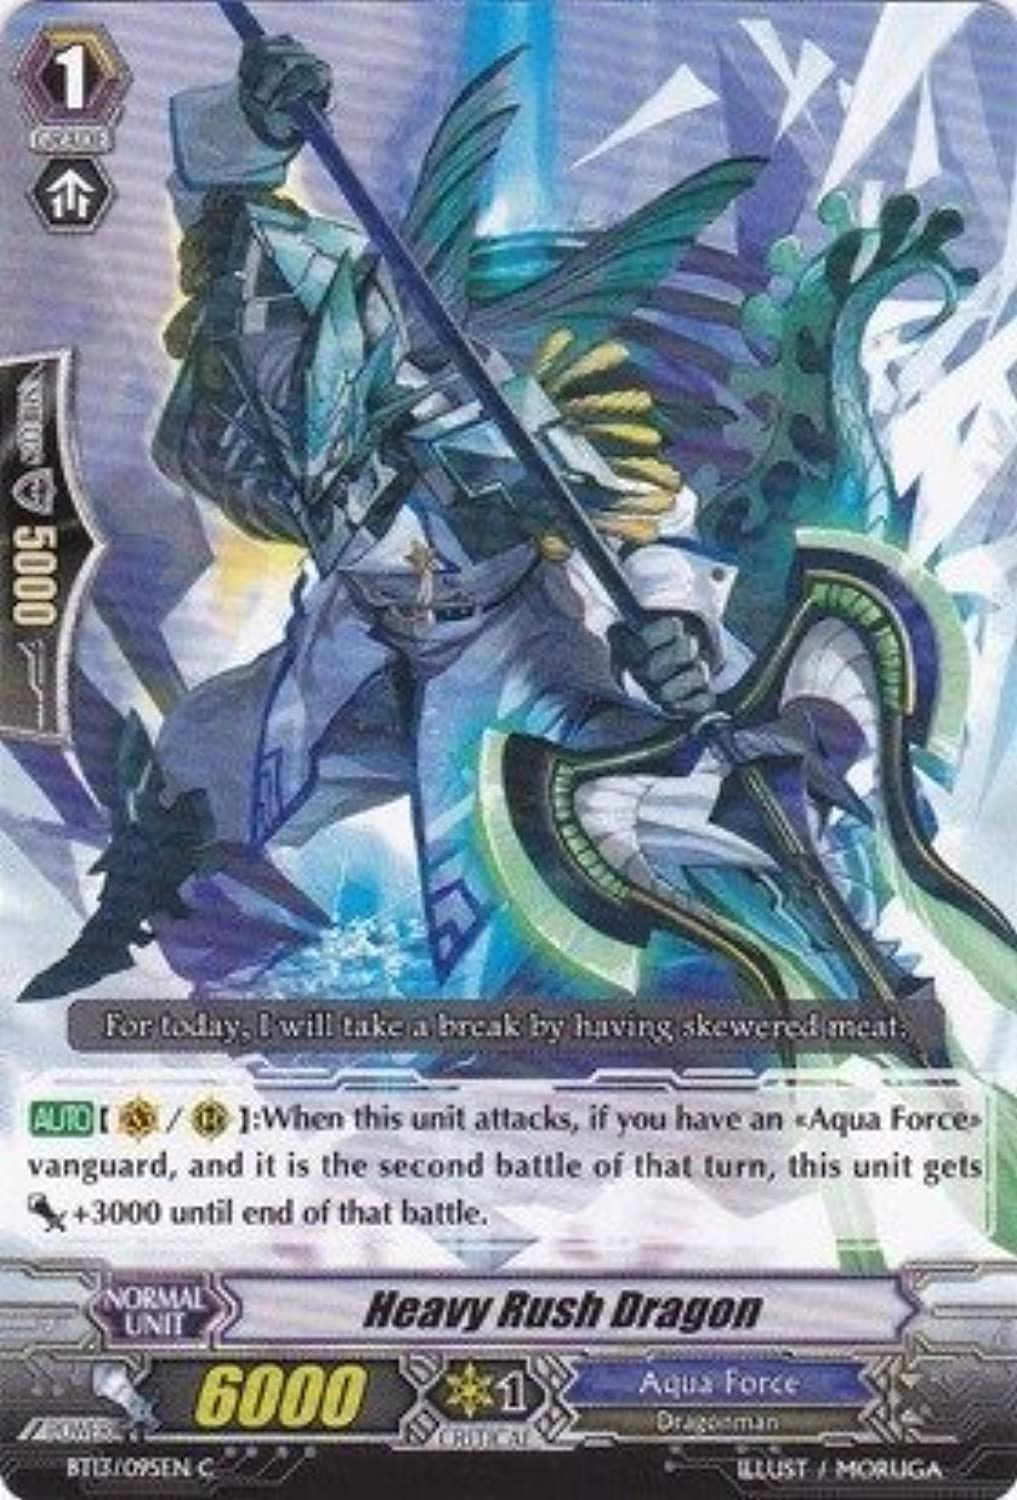 Cardfight   Vanguard TCG  Heavy Rush Dragon (BT13 095EN)  Catastrophic Outbreak by Bushiroad Inc.